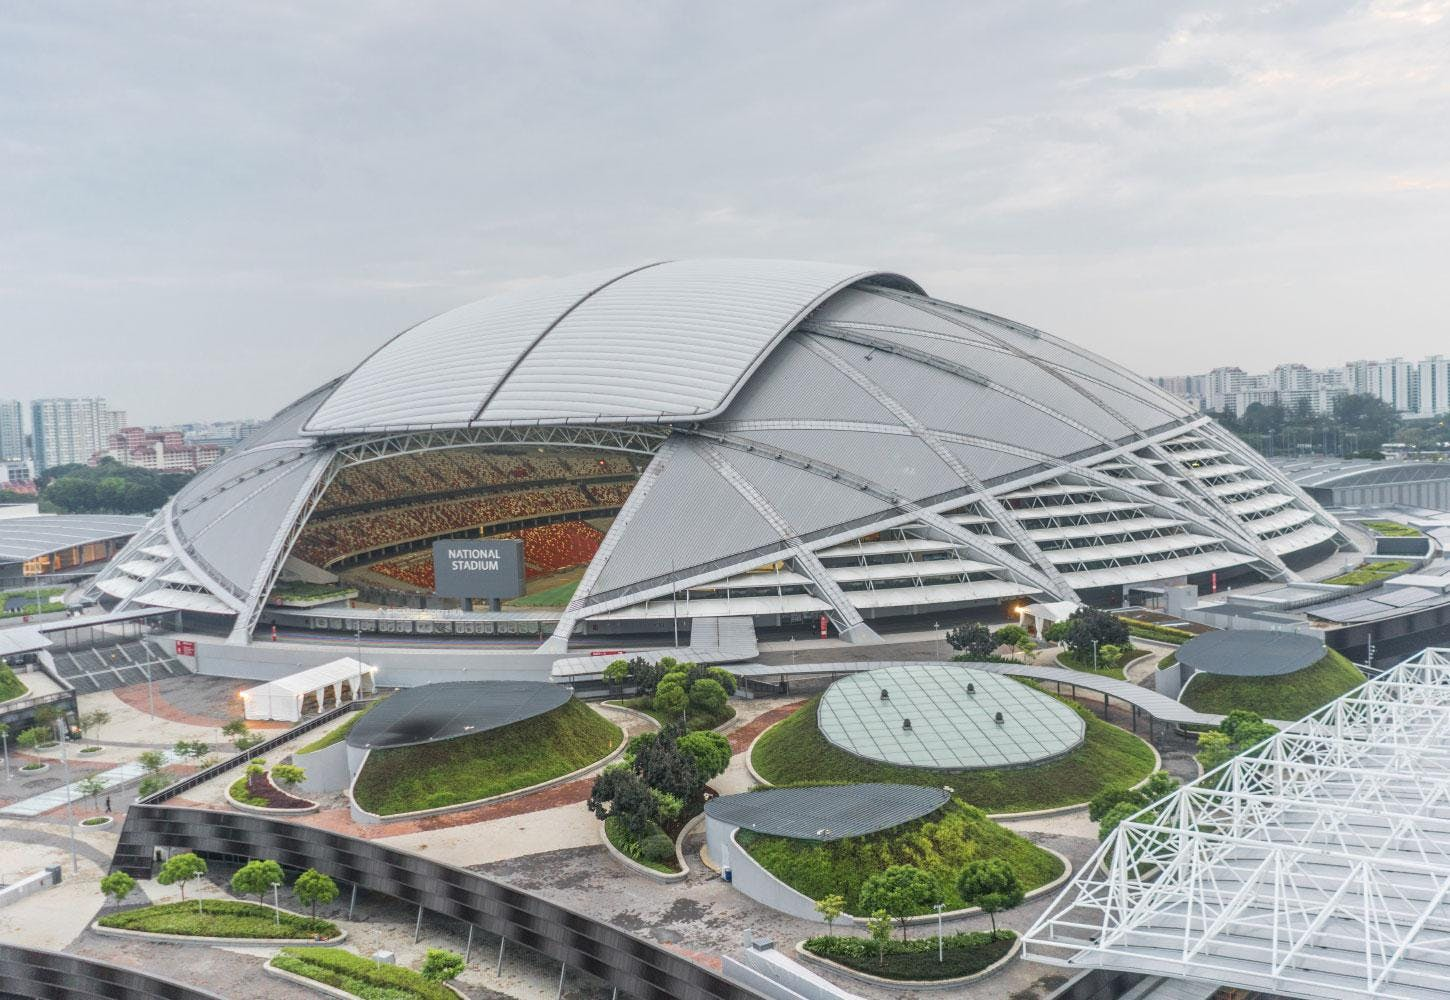 Singapore's National Stadium - a 55,000 seat stadium with a multi-purpose retractable roof and is used for sport events and concerts